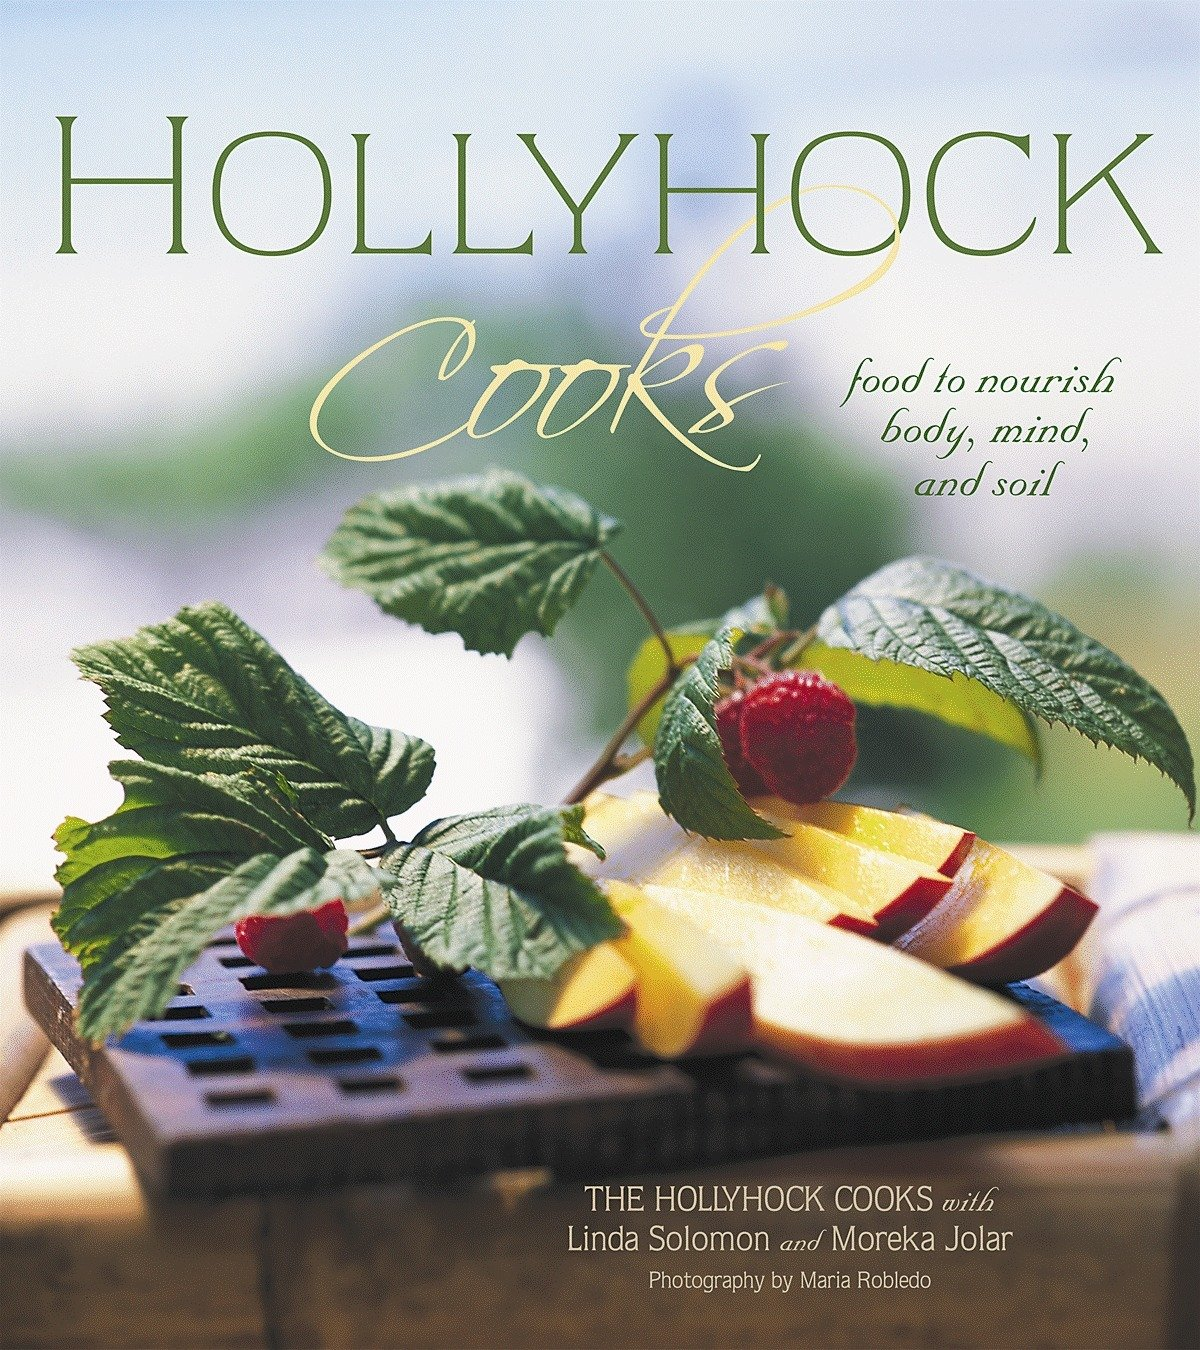 Hollyhock Cooks: Food to Nourish Body, Mind and Soil pdf